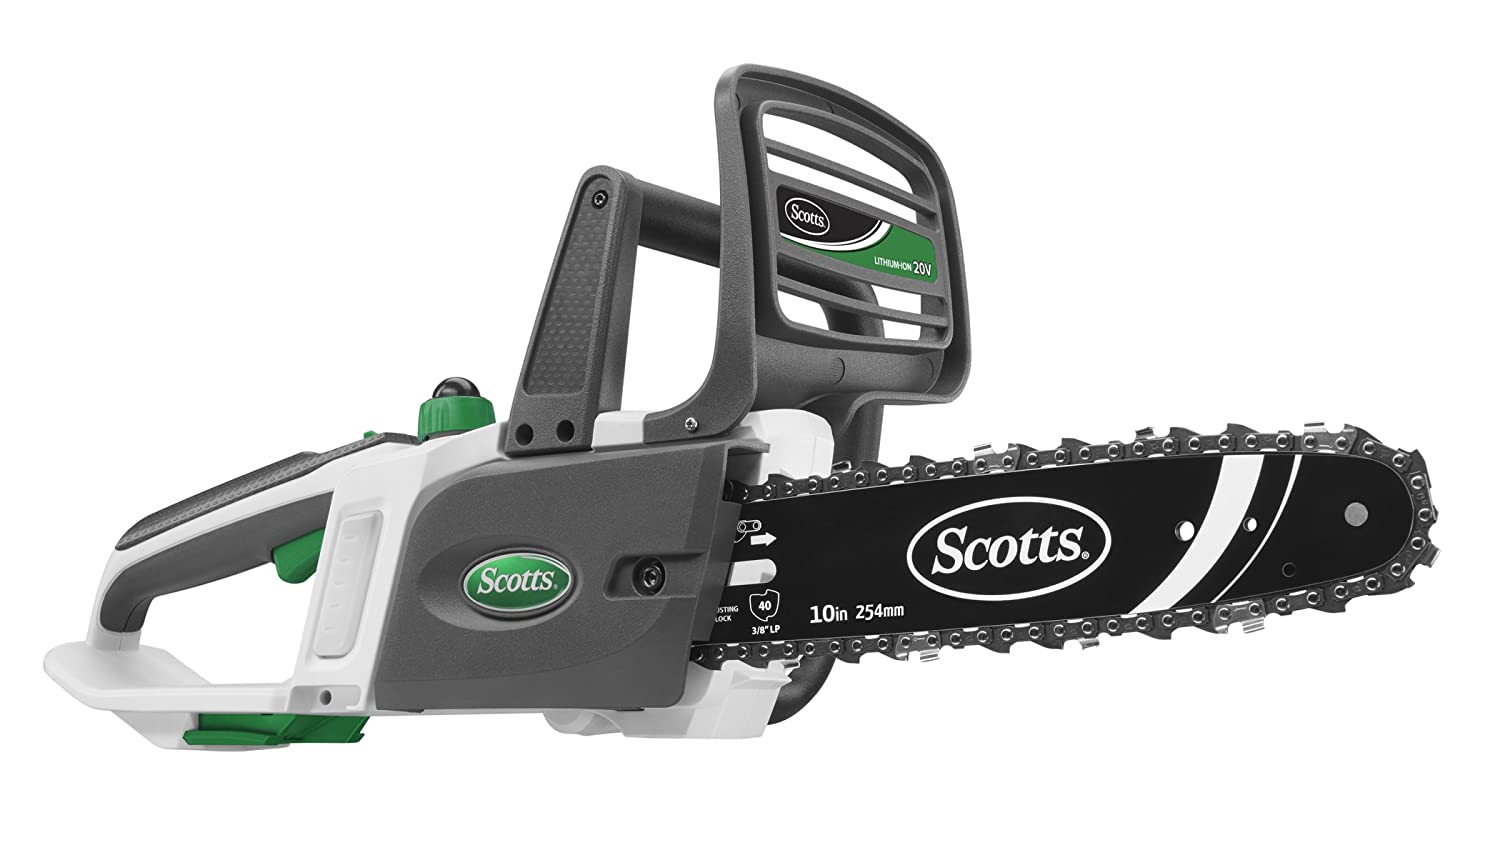 8. Scotts S20510 SYNC 20V Battery Powered Chainsaw